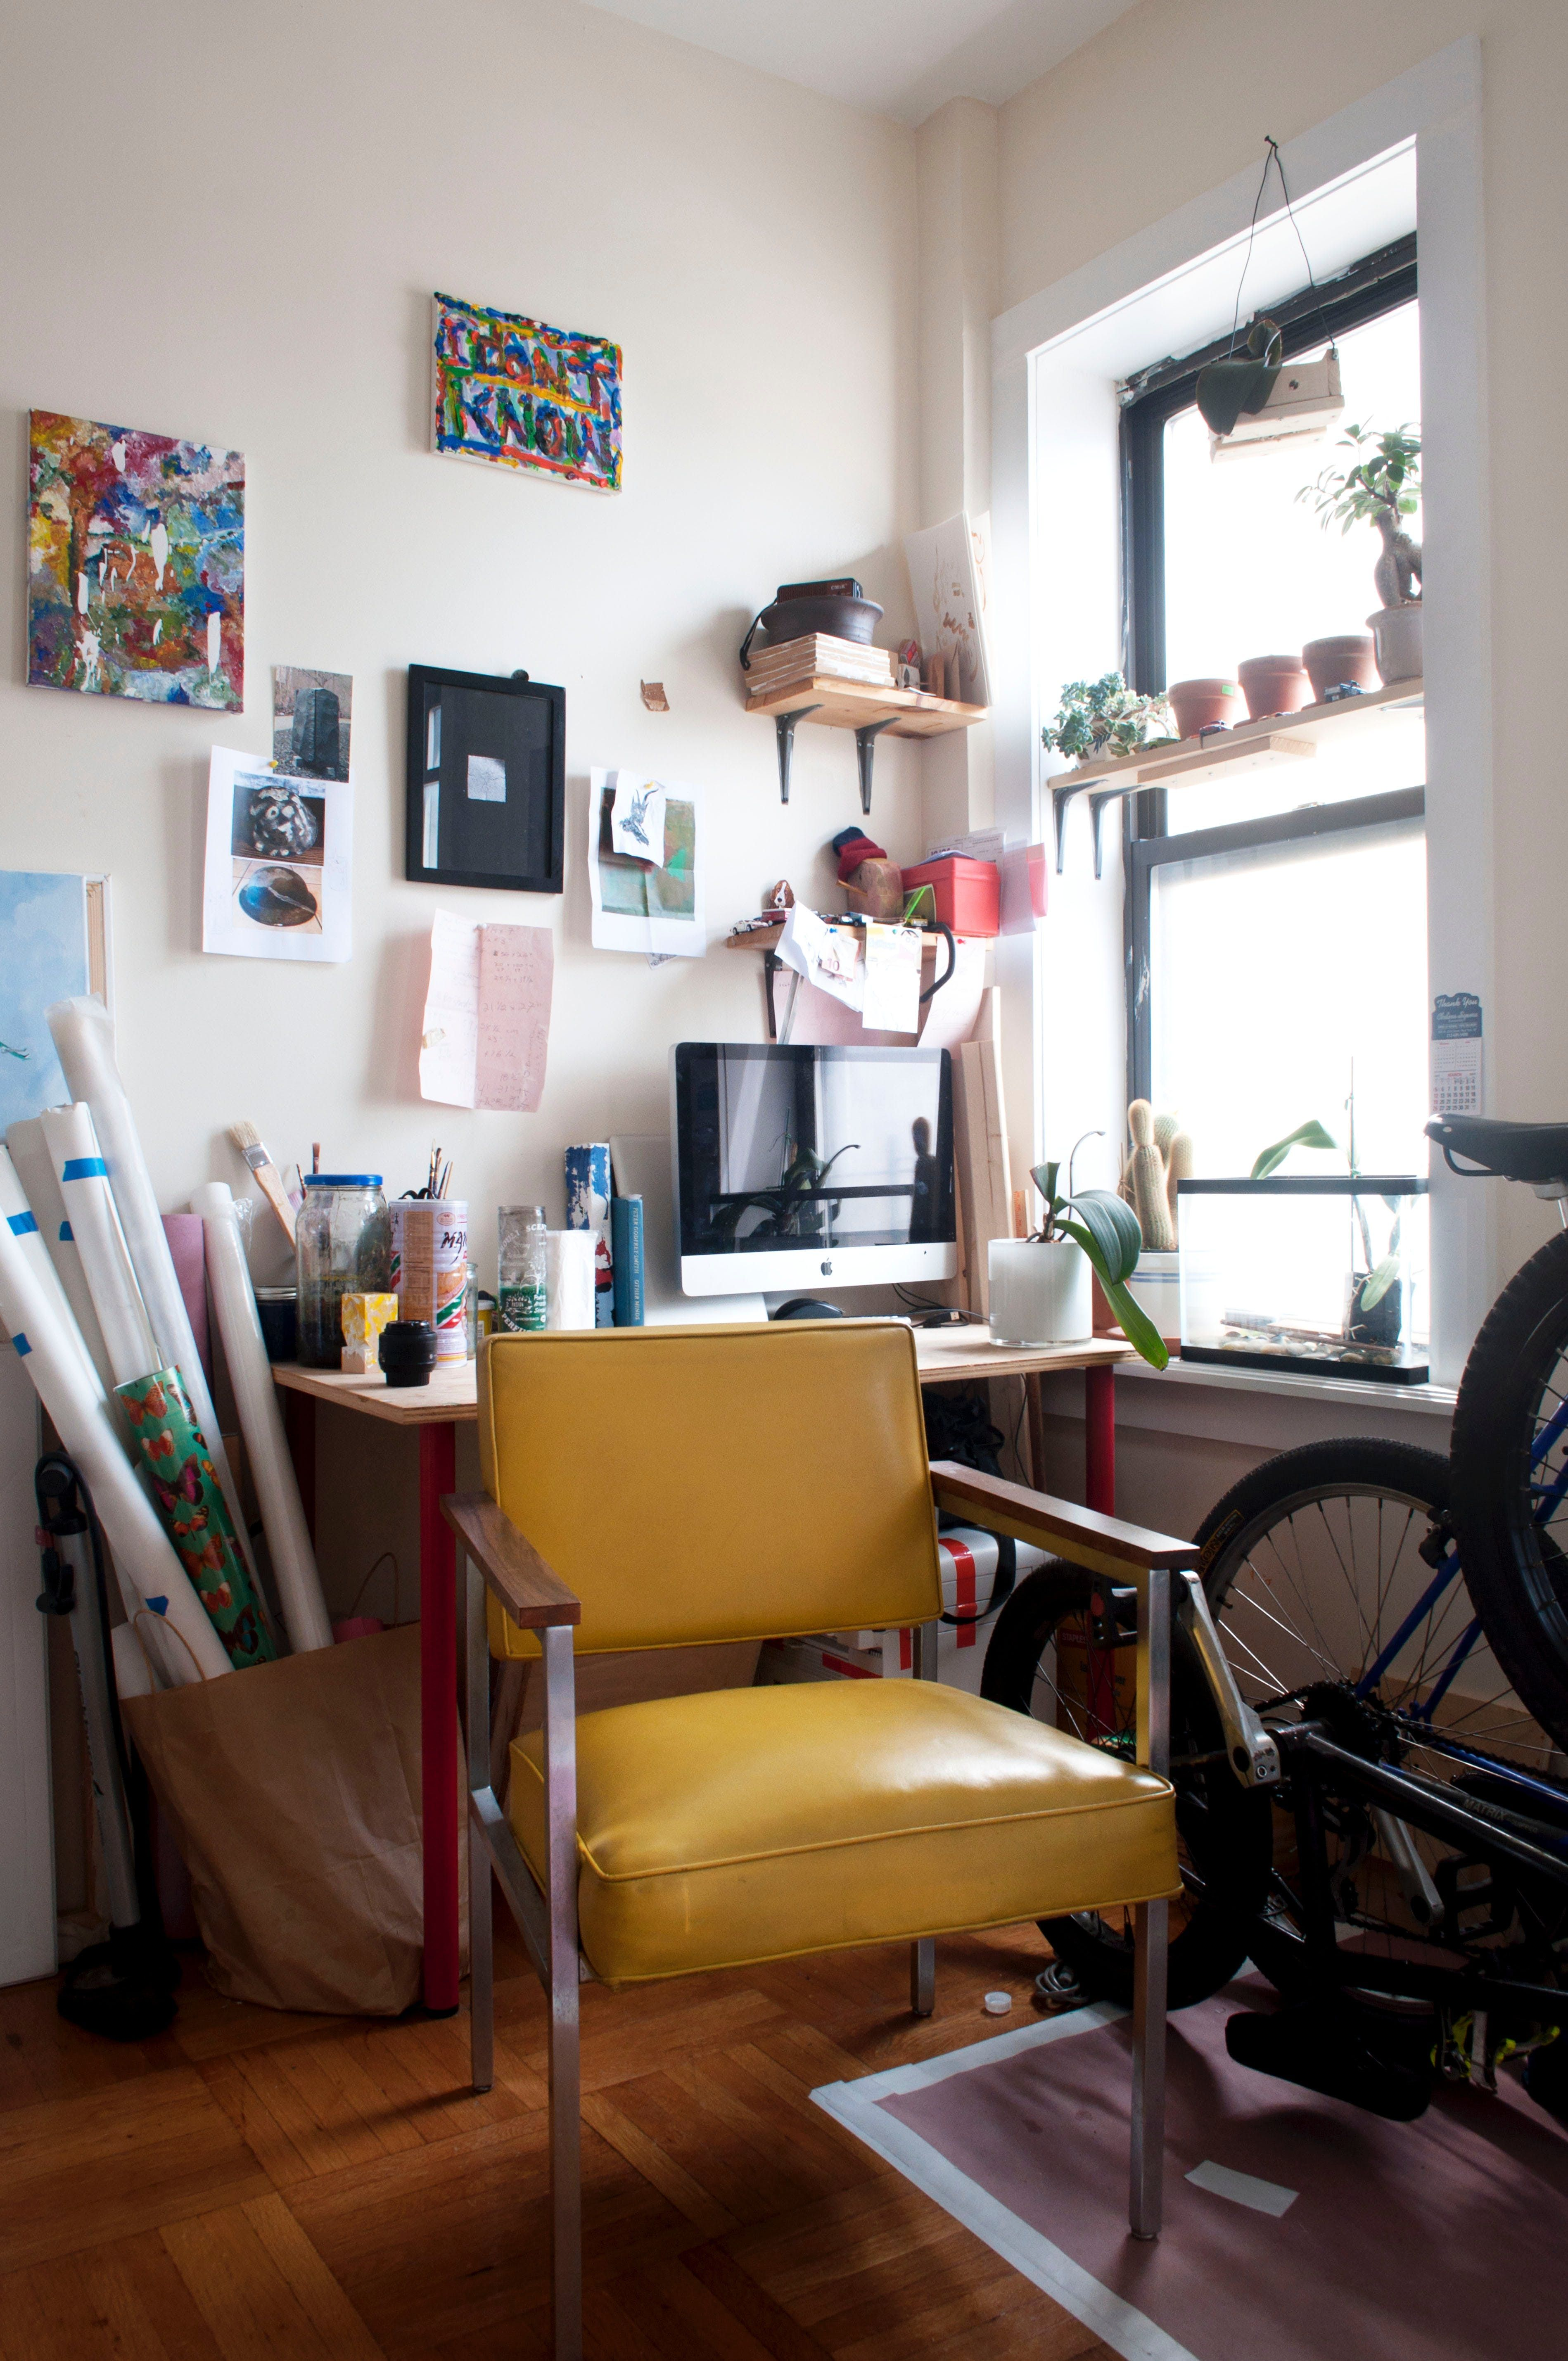 A Brooklyn Apartment That's Home to ArtLoving LA